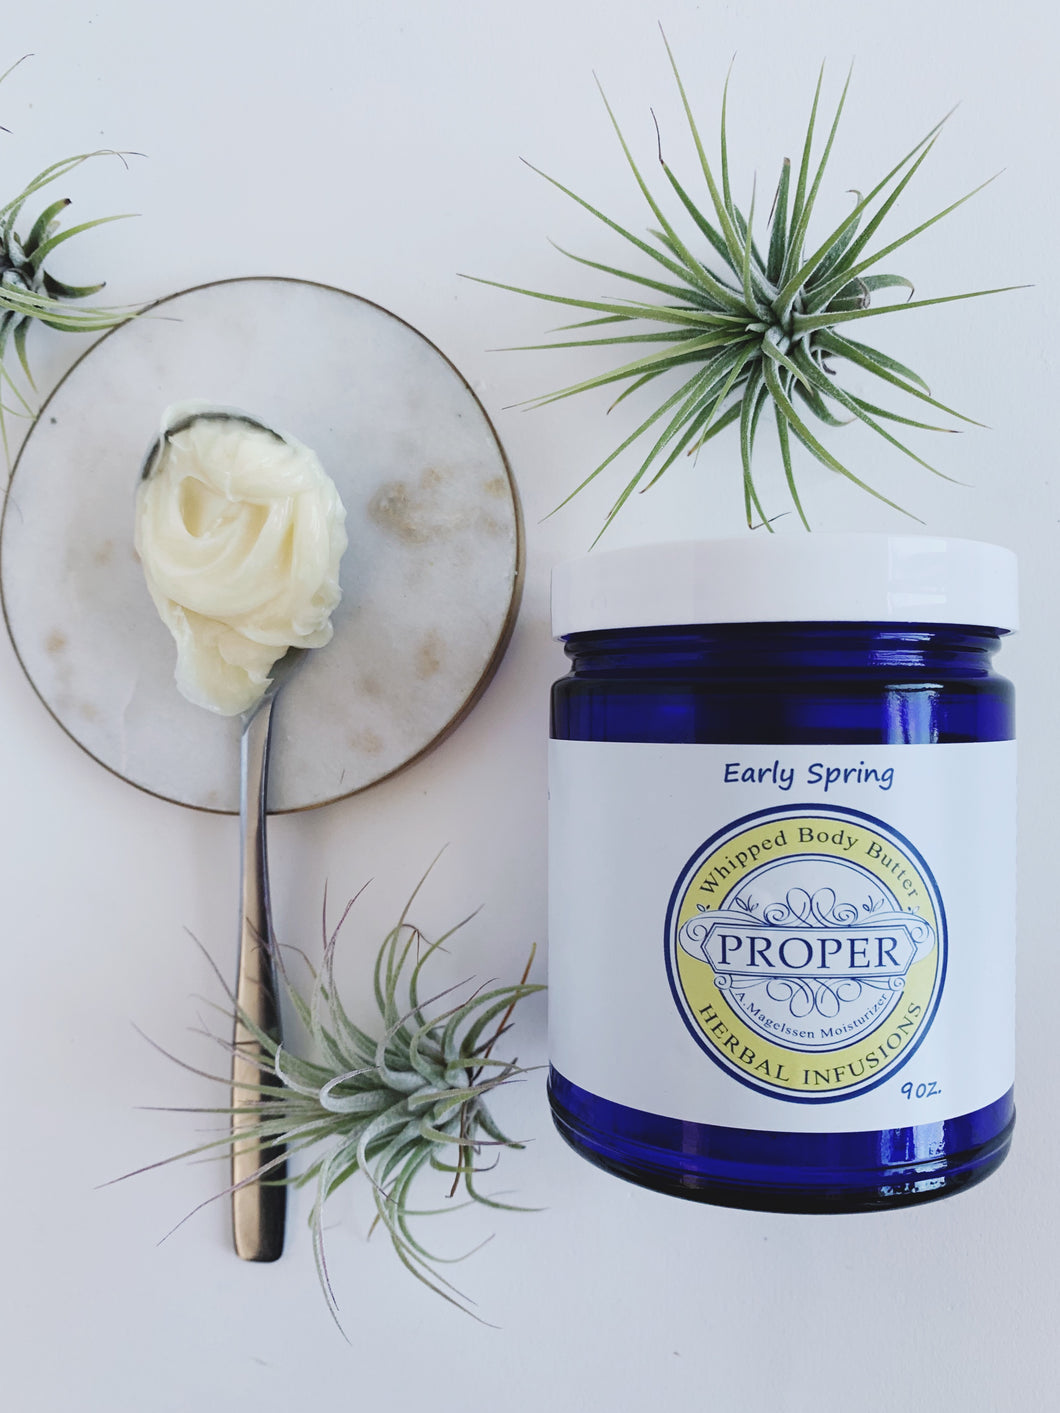 Whipped Body Butter - Early Spring